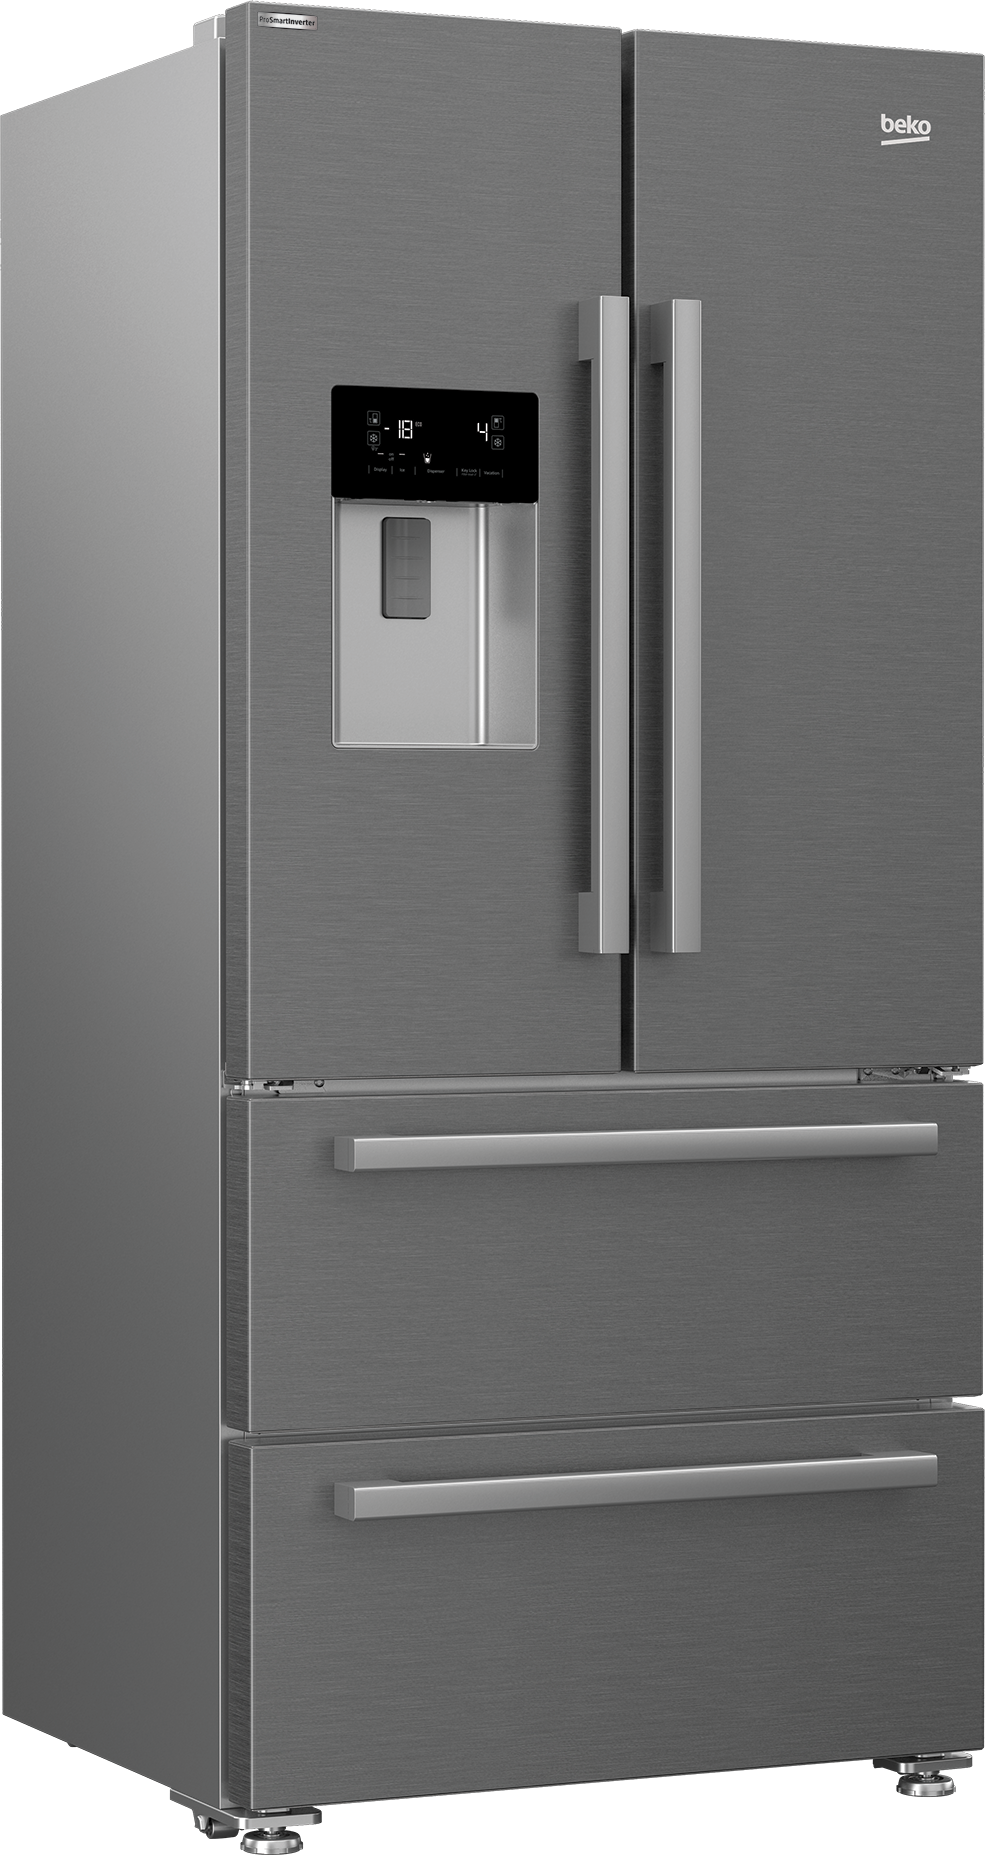 84 cm No-frost Multi-door Koelvries combinaties GNE60530DX